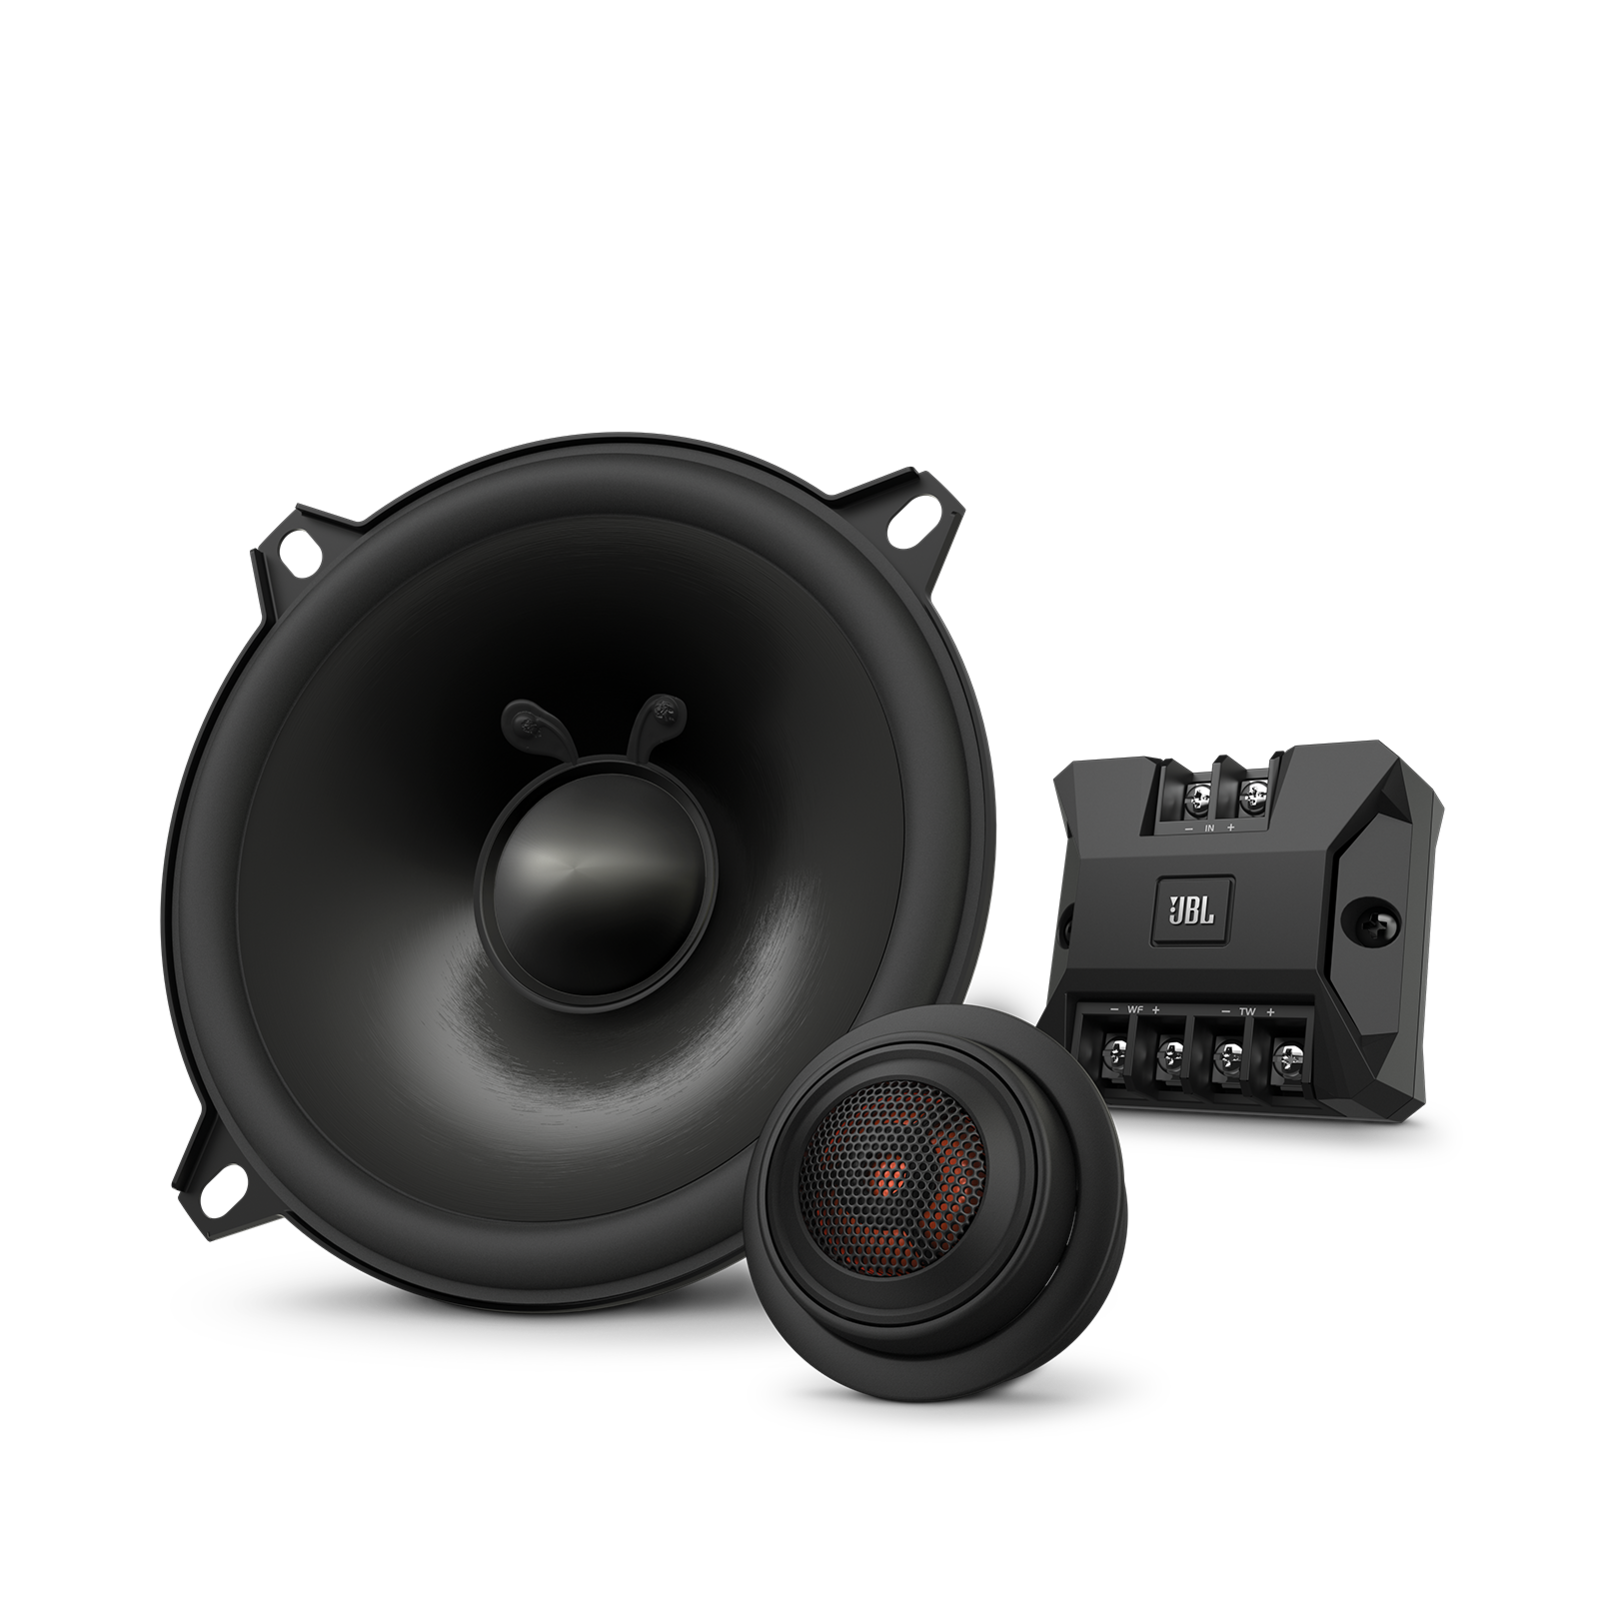 Car Component Speaker Systems Jbl Parts Jeep Audio Electronics Accessories See All Sony Products Club5000c Htmlcgidcar Systemsdwvar Colorblack Global Currentproductsupporturlproductidclub